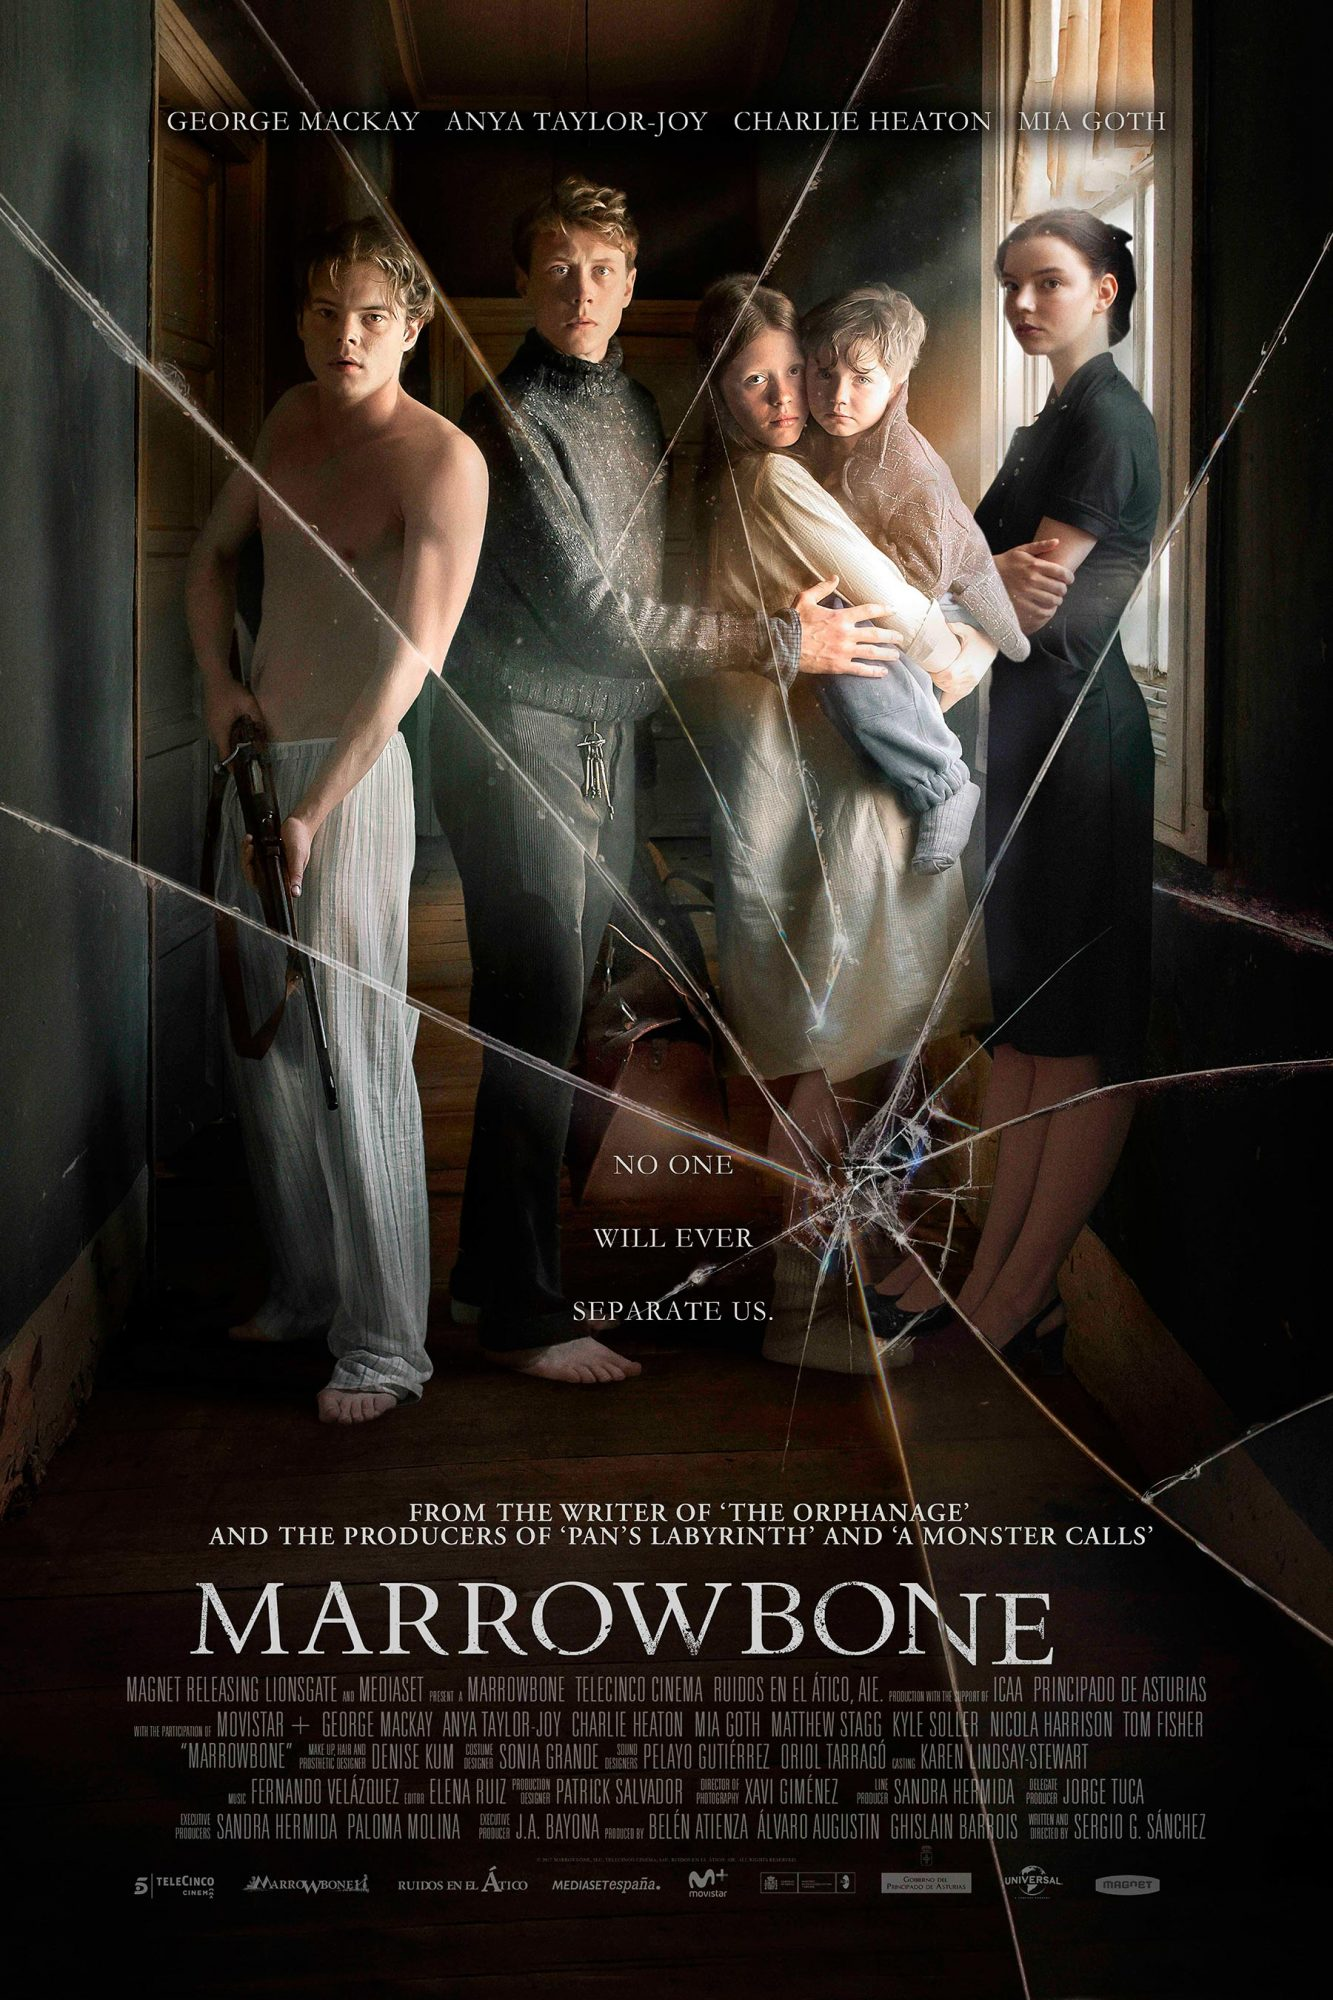 Marrowbone (2018) Movie Poster CR: Magnolia Pictures